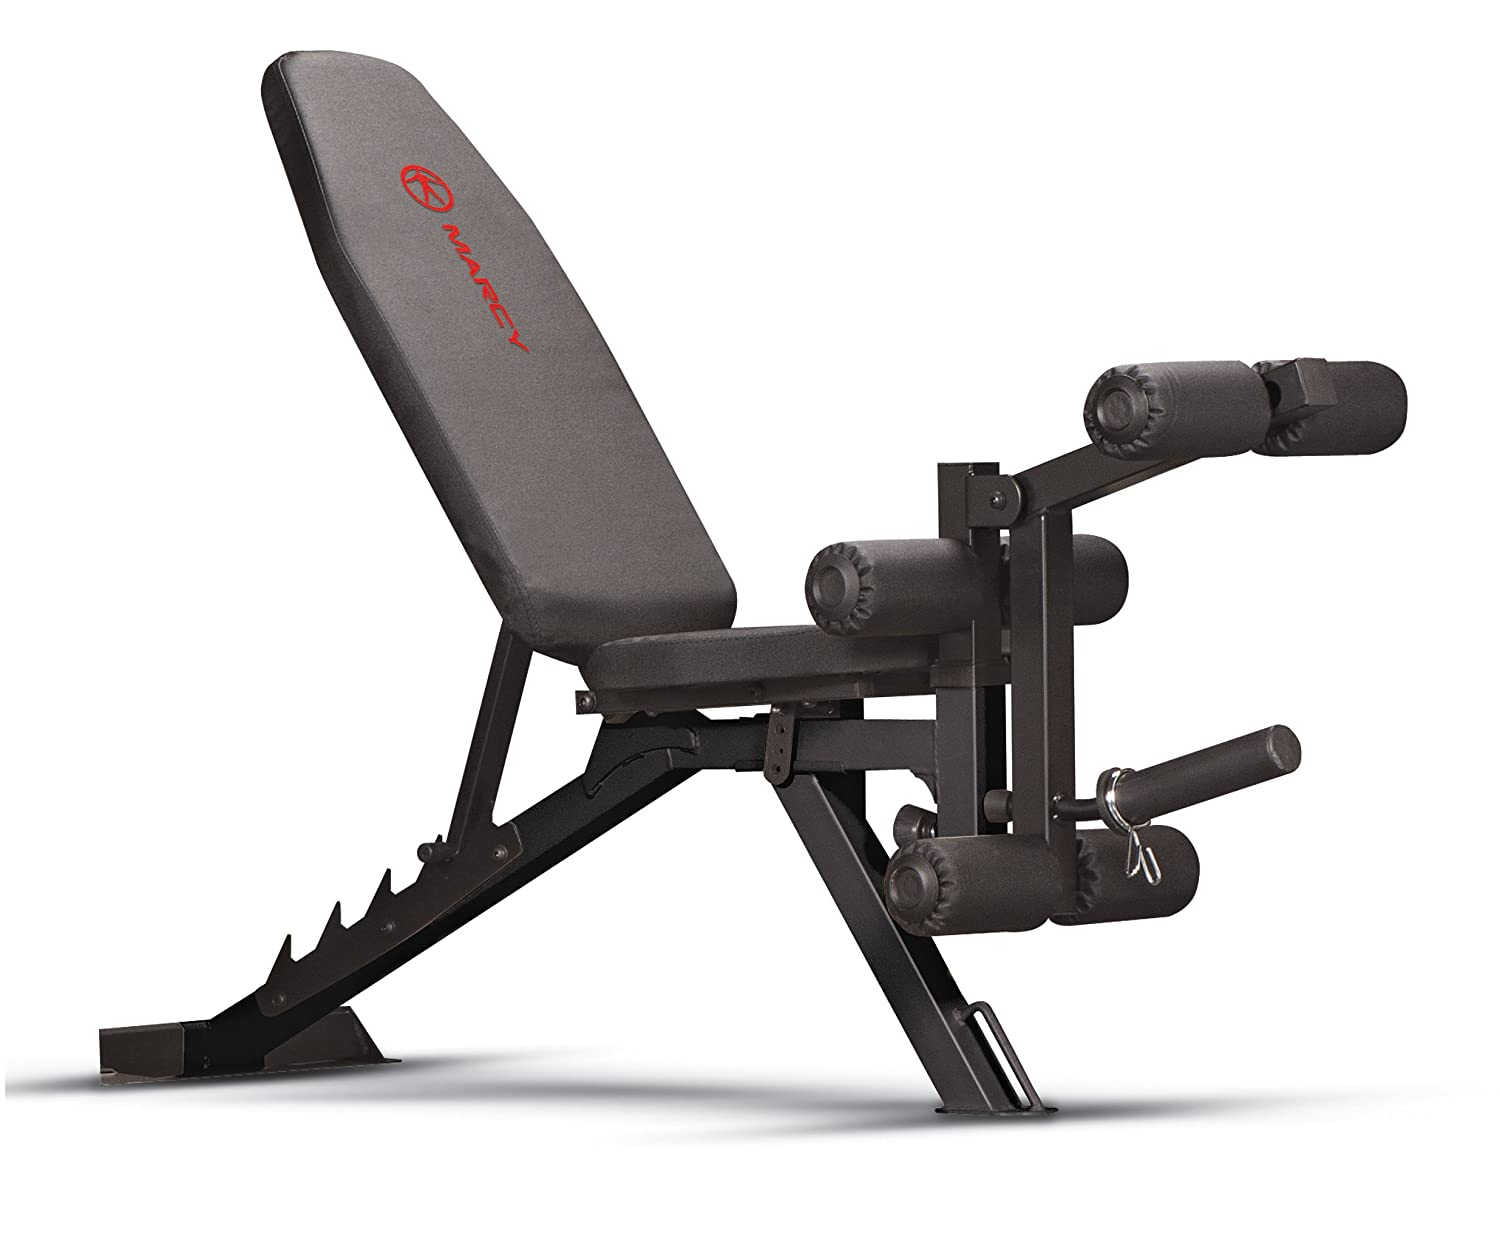 Marcy Adjustable 6 Position Utility Bench with Leg Developer and High Density Foam Padding SB-350